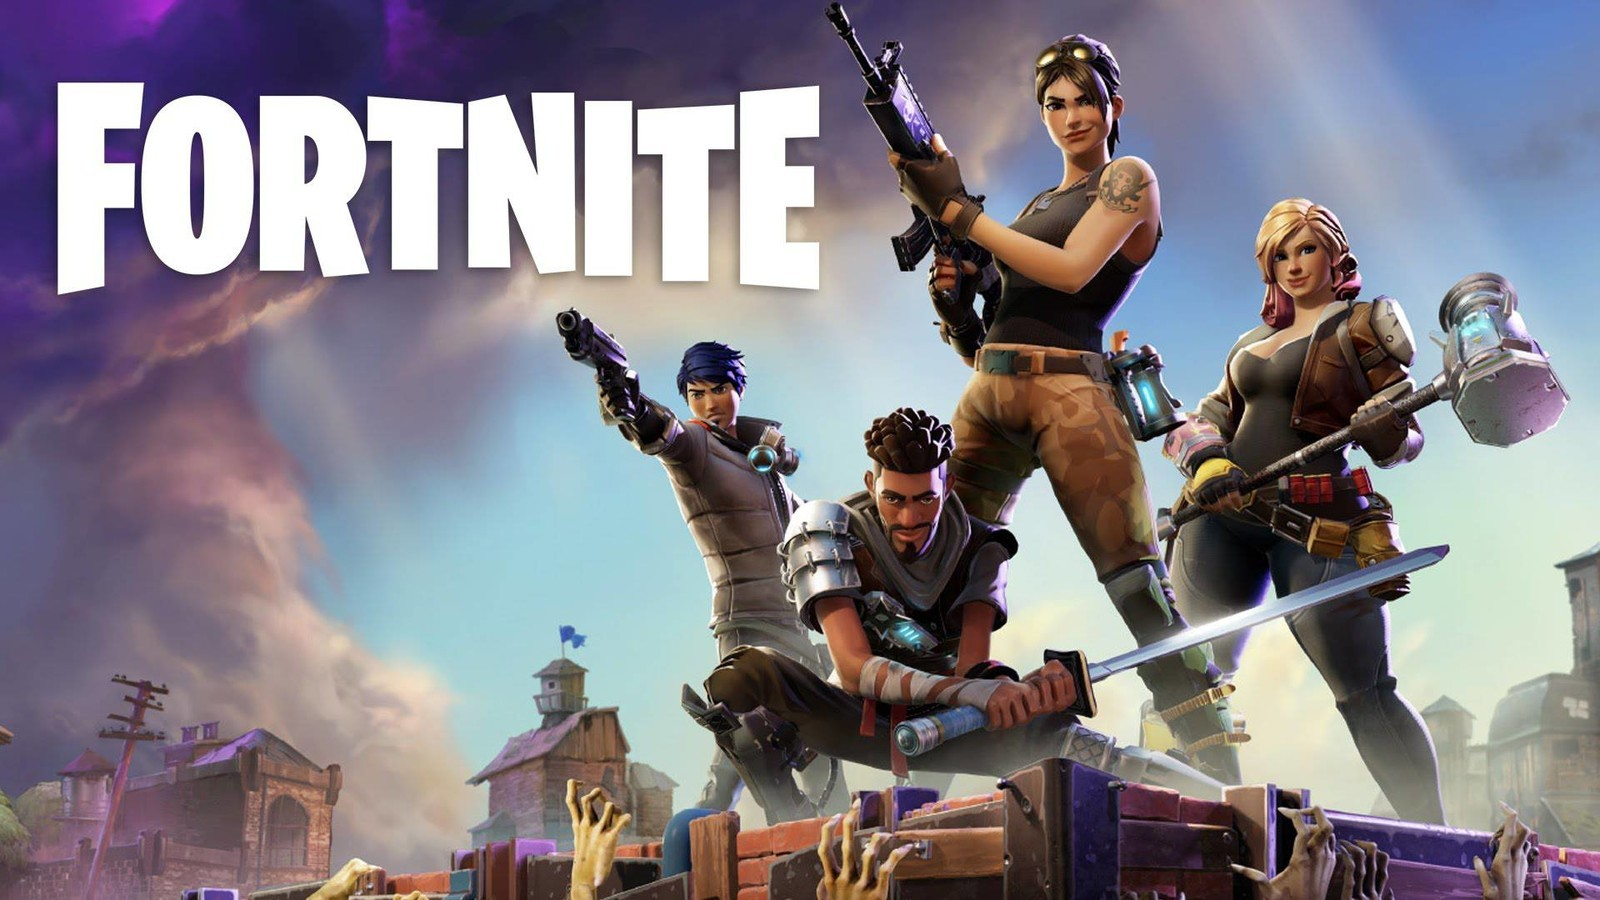 【BIT.LY 2XDSJUM FORTNITE】 Vbucks and Extra Vbucks FOR ANDROID IOS PC PLAYSTATION | 100% WORKING METHOD | GET UNLIMITED RESOURCES NOW